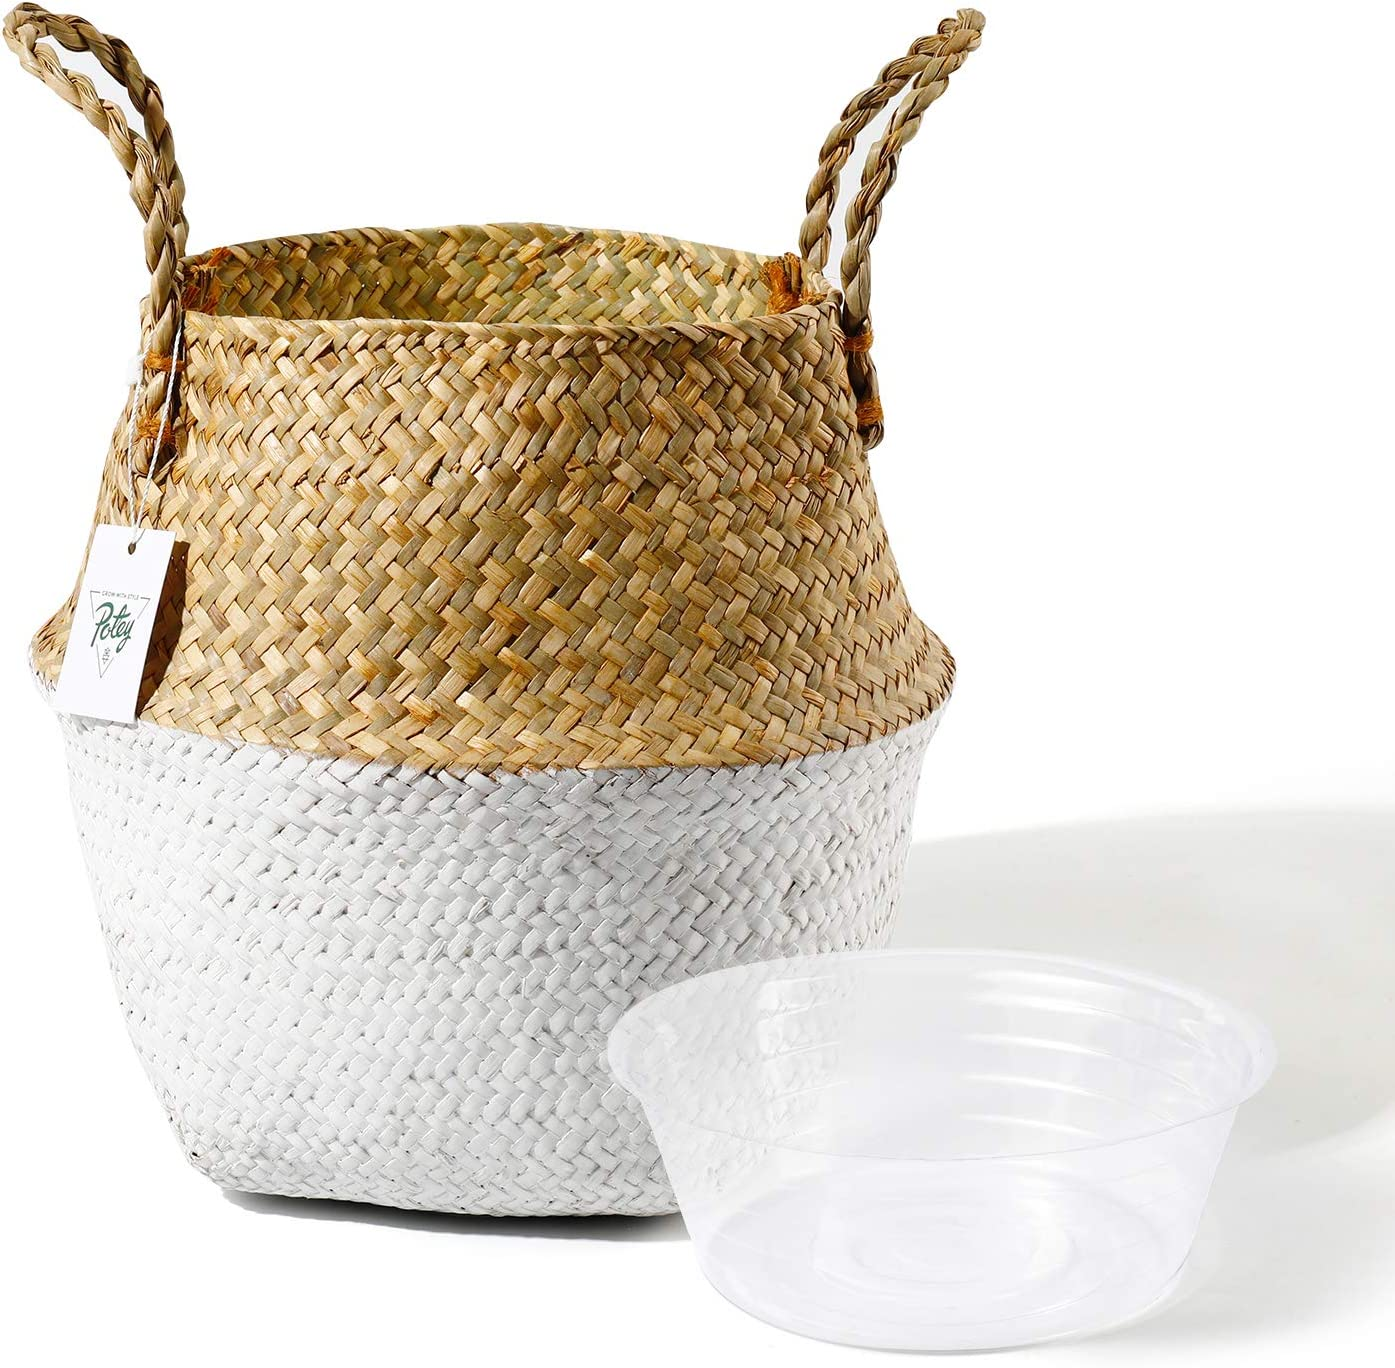 POTEY 710201 Seagrass Plant Basket - Hand Woven Belly Basket with Handles, Middle Storage Laundry, Picnic, Plant Pot Cover, Home Decor and Woven Straw Beach Bag (Middle, Original+White)